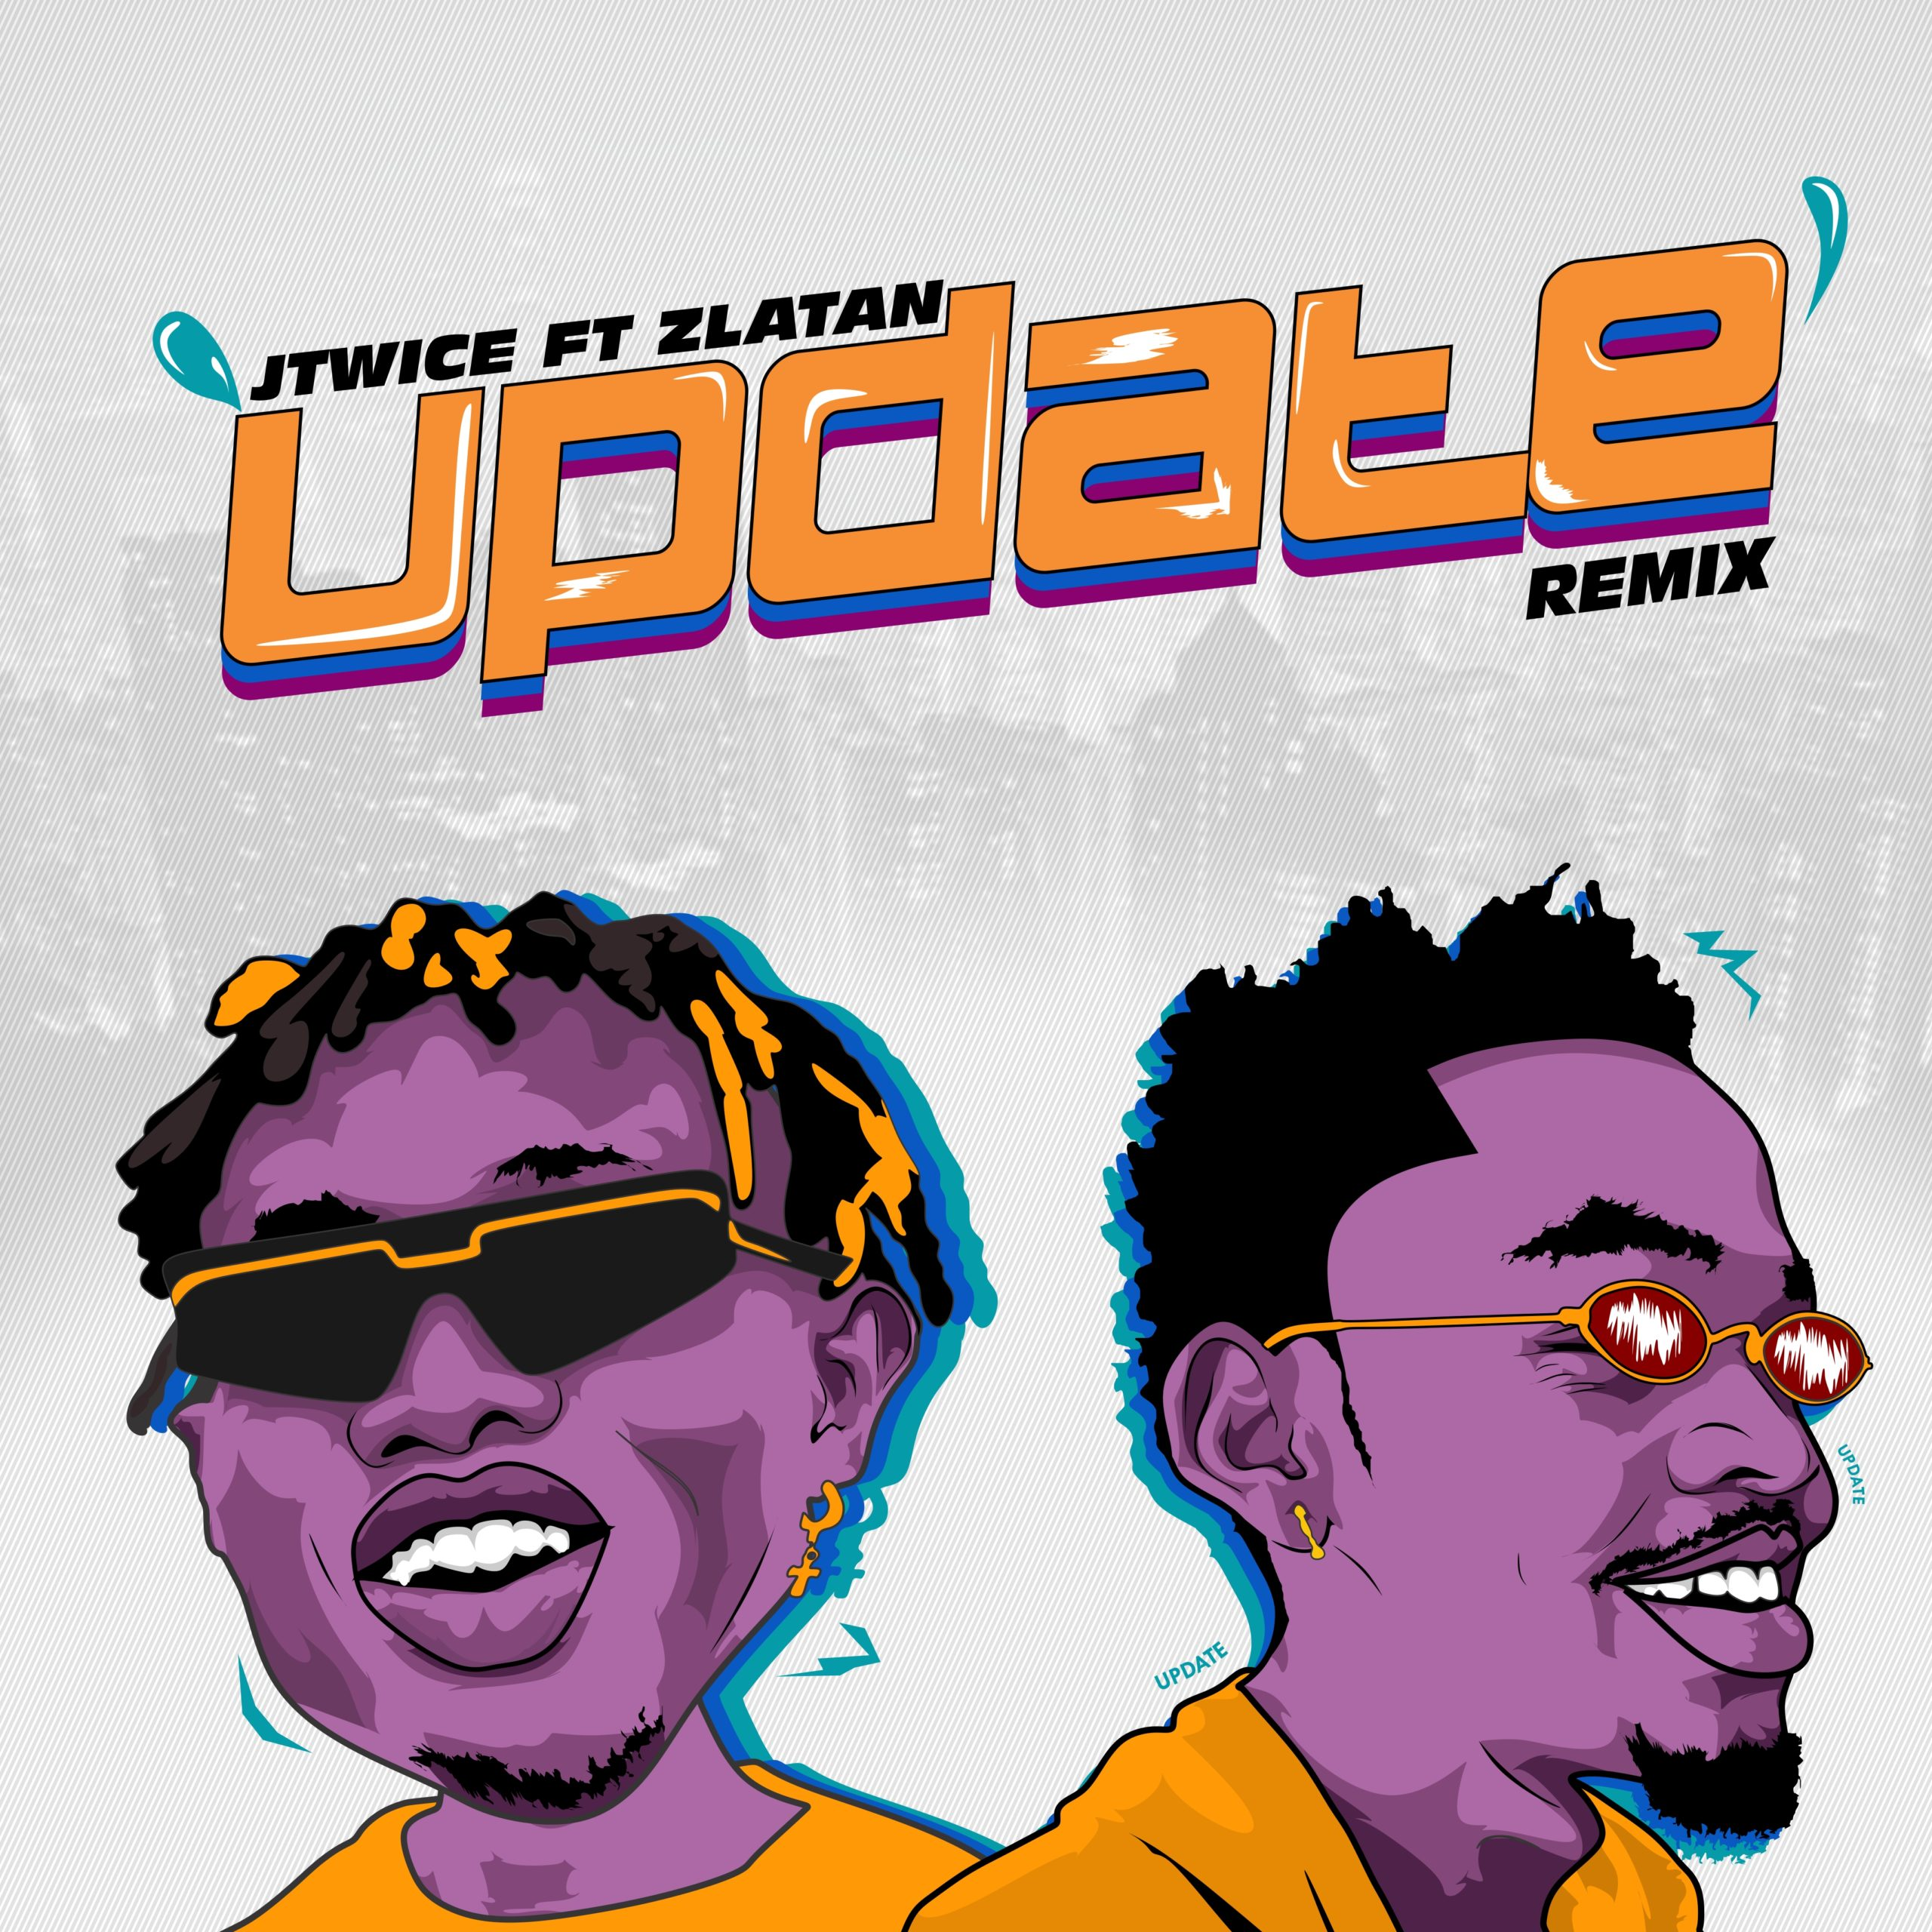 JTwice feat. Zlatan – Update (Remix)